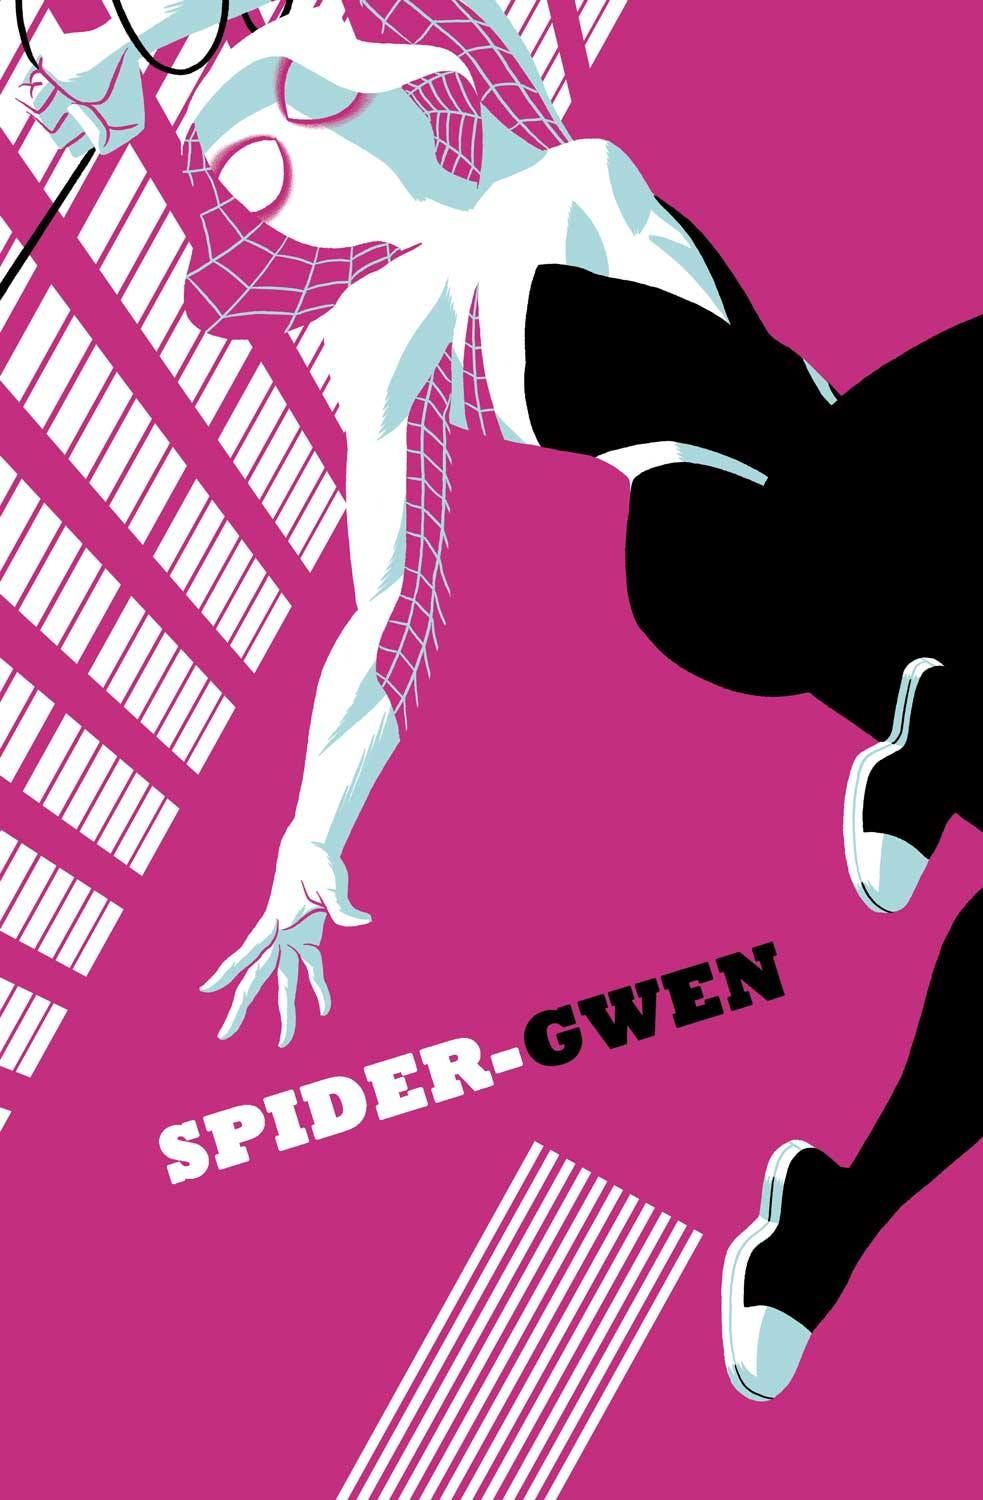 These Marvel Comics Variant Covers by Michael Cho Have Style